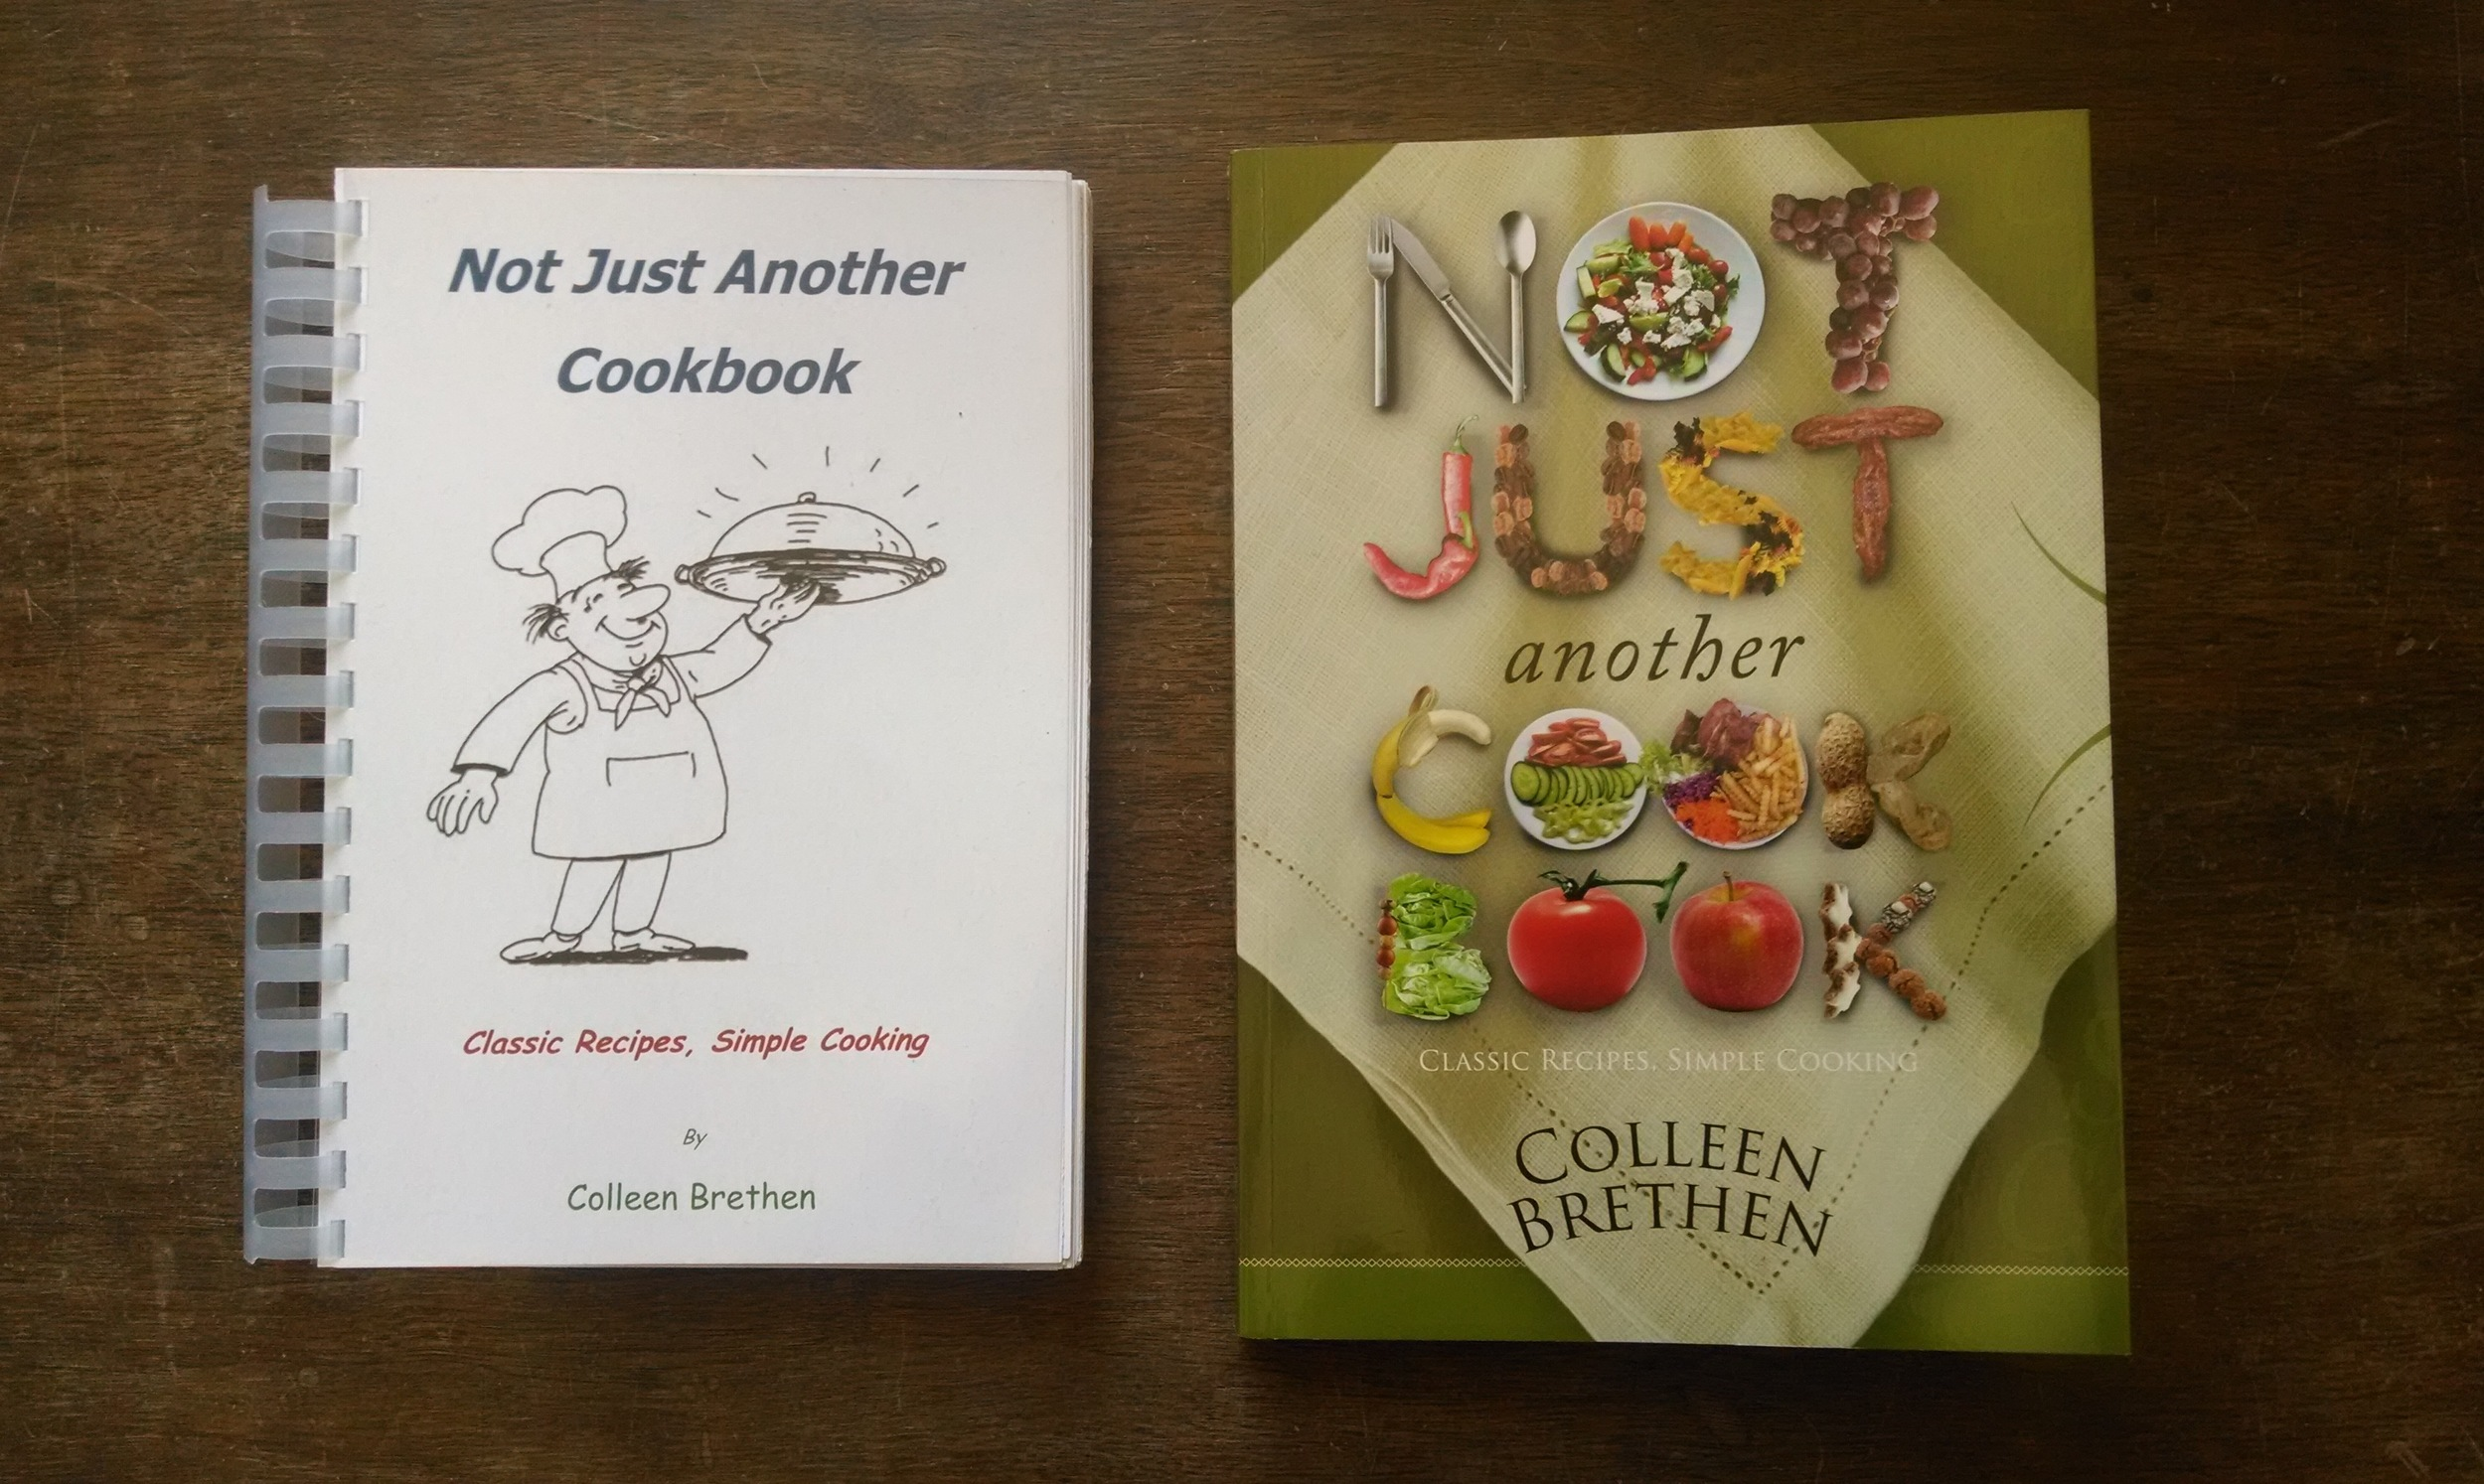 book publishing services, Not Just Another Cookbook